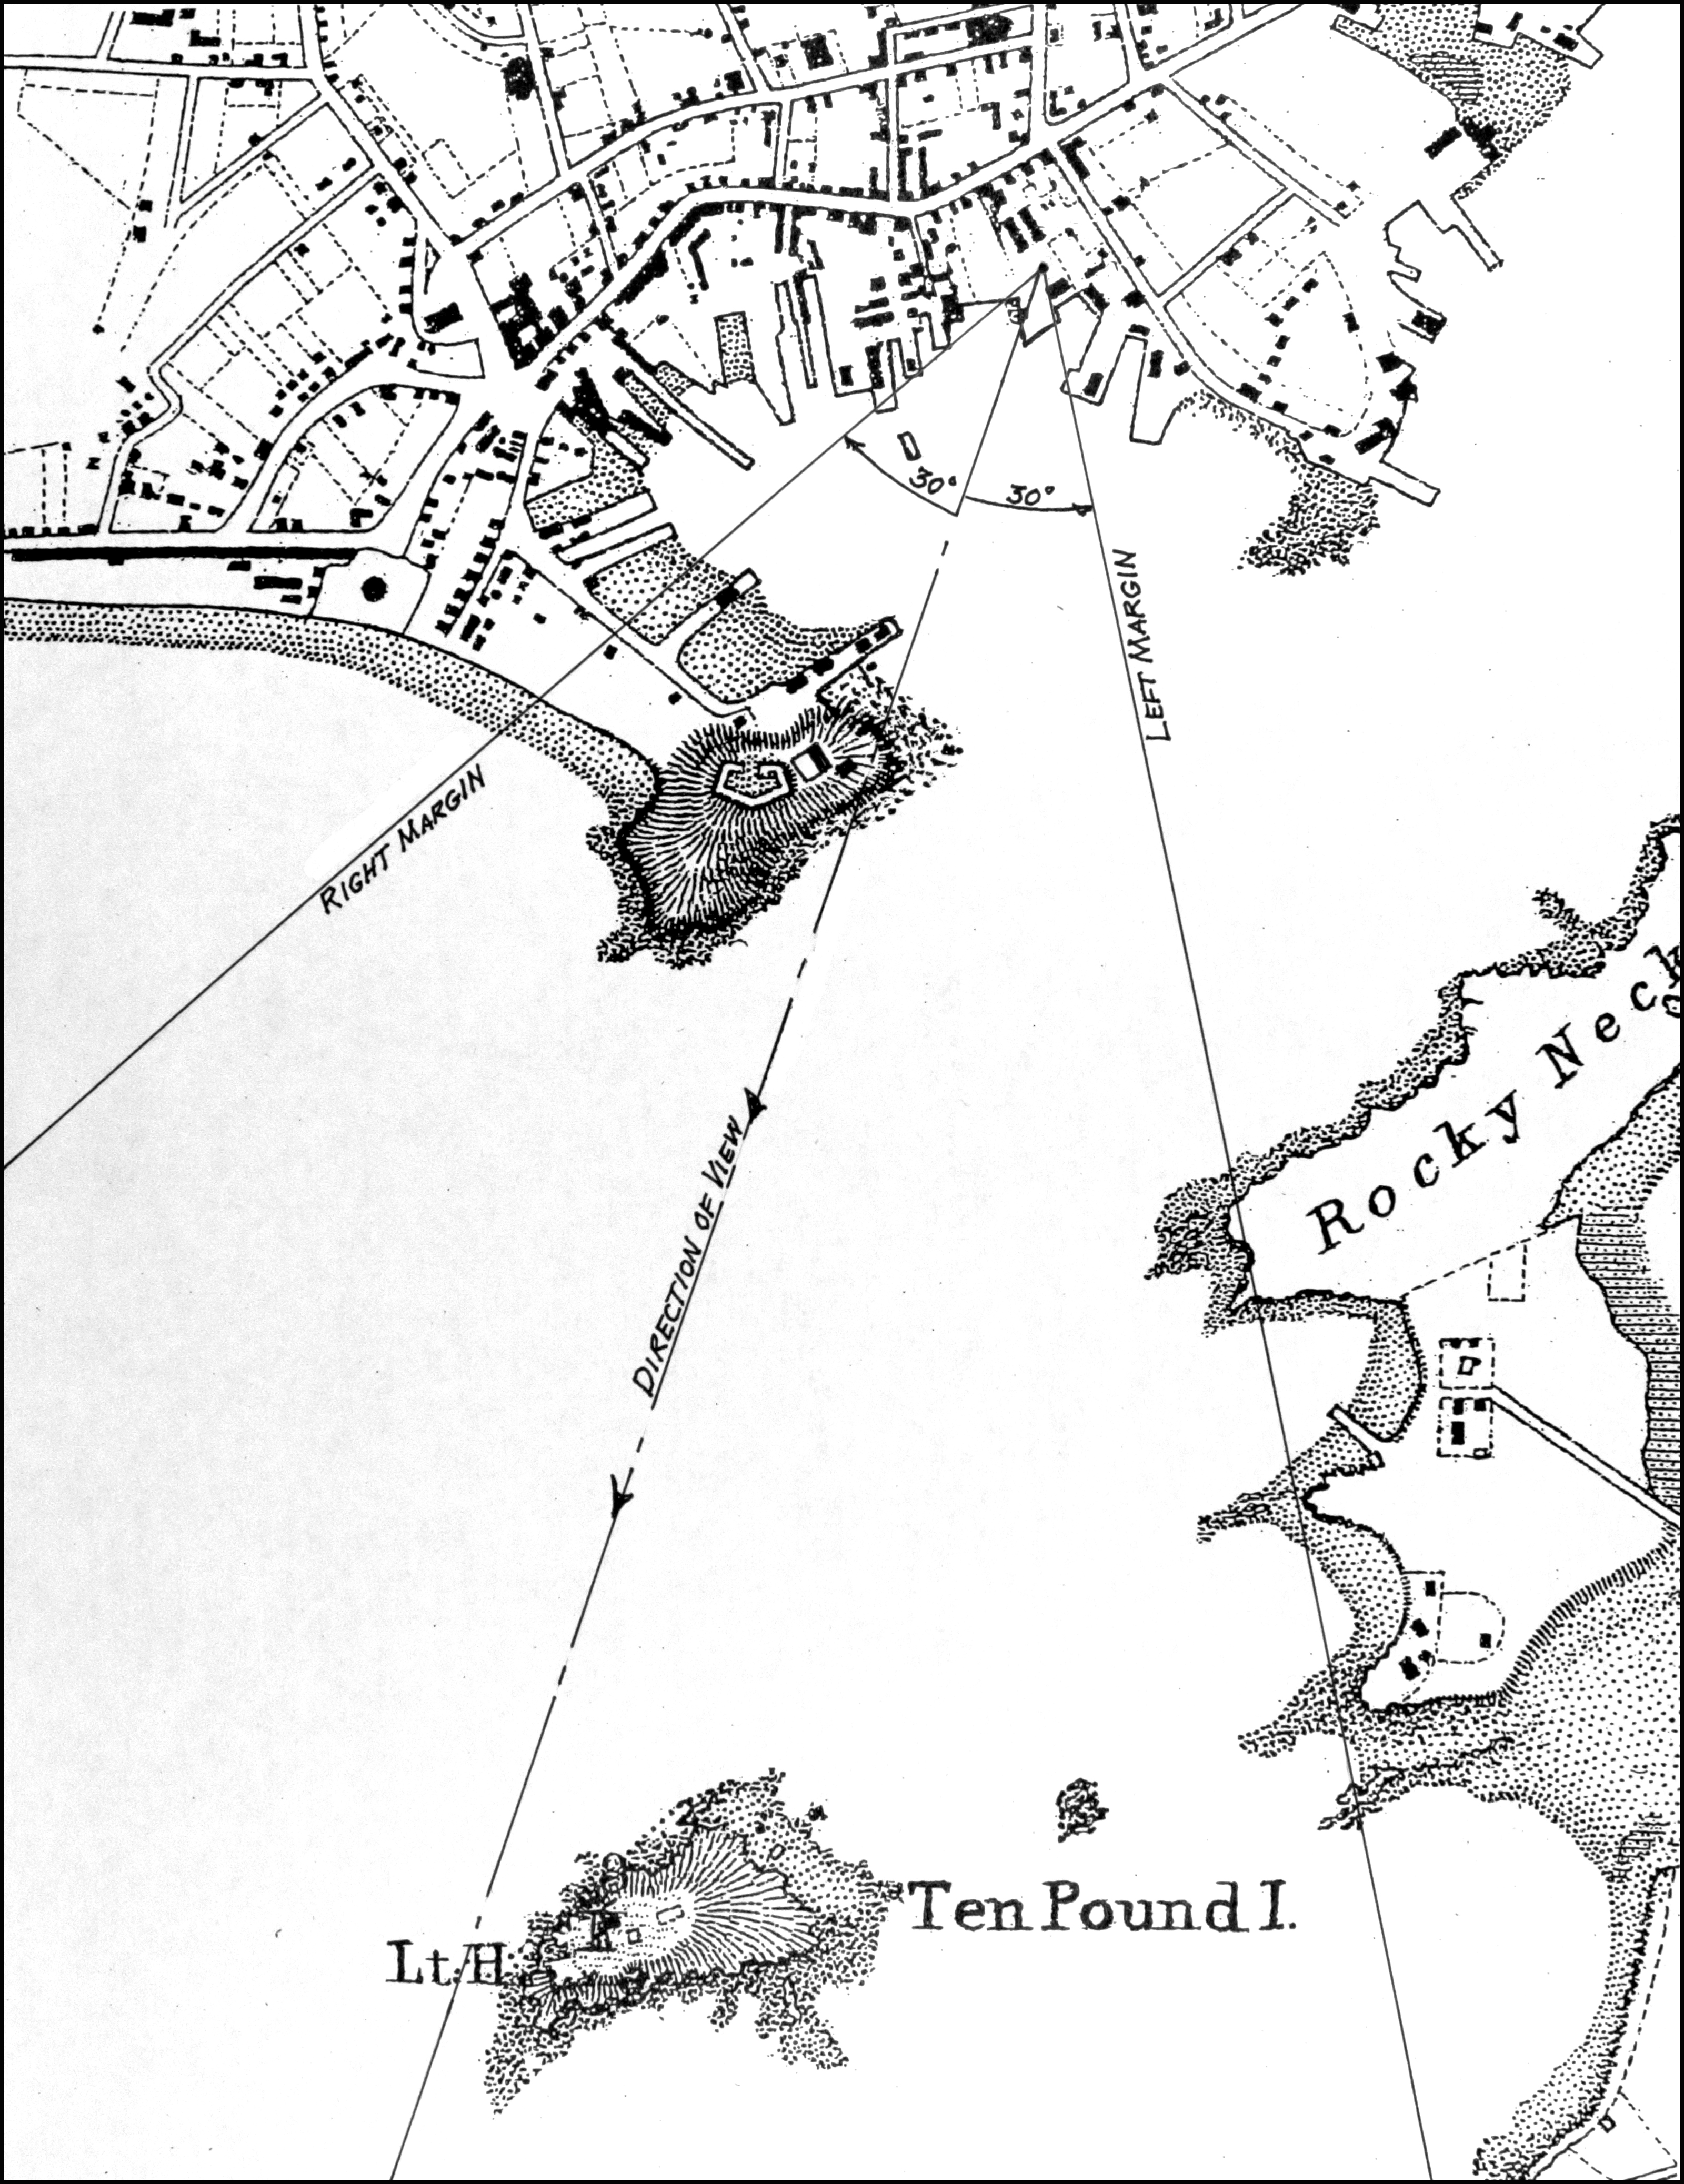 fitz henry lane the fort and ten pound island gloucester